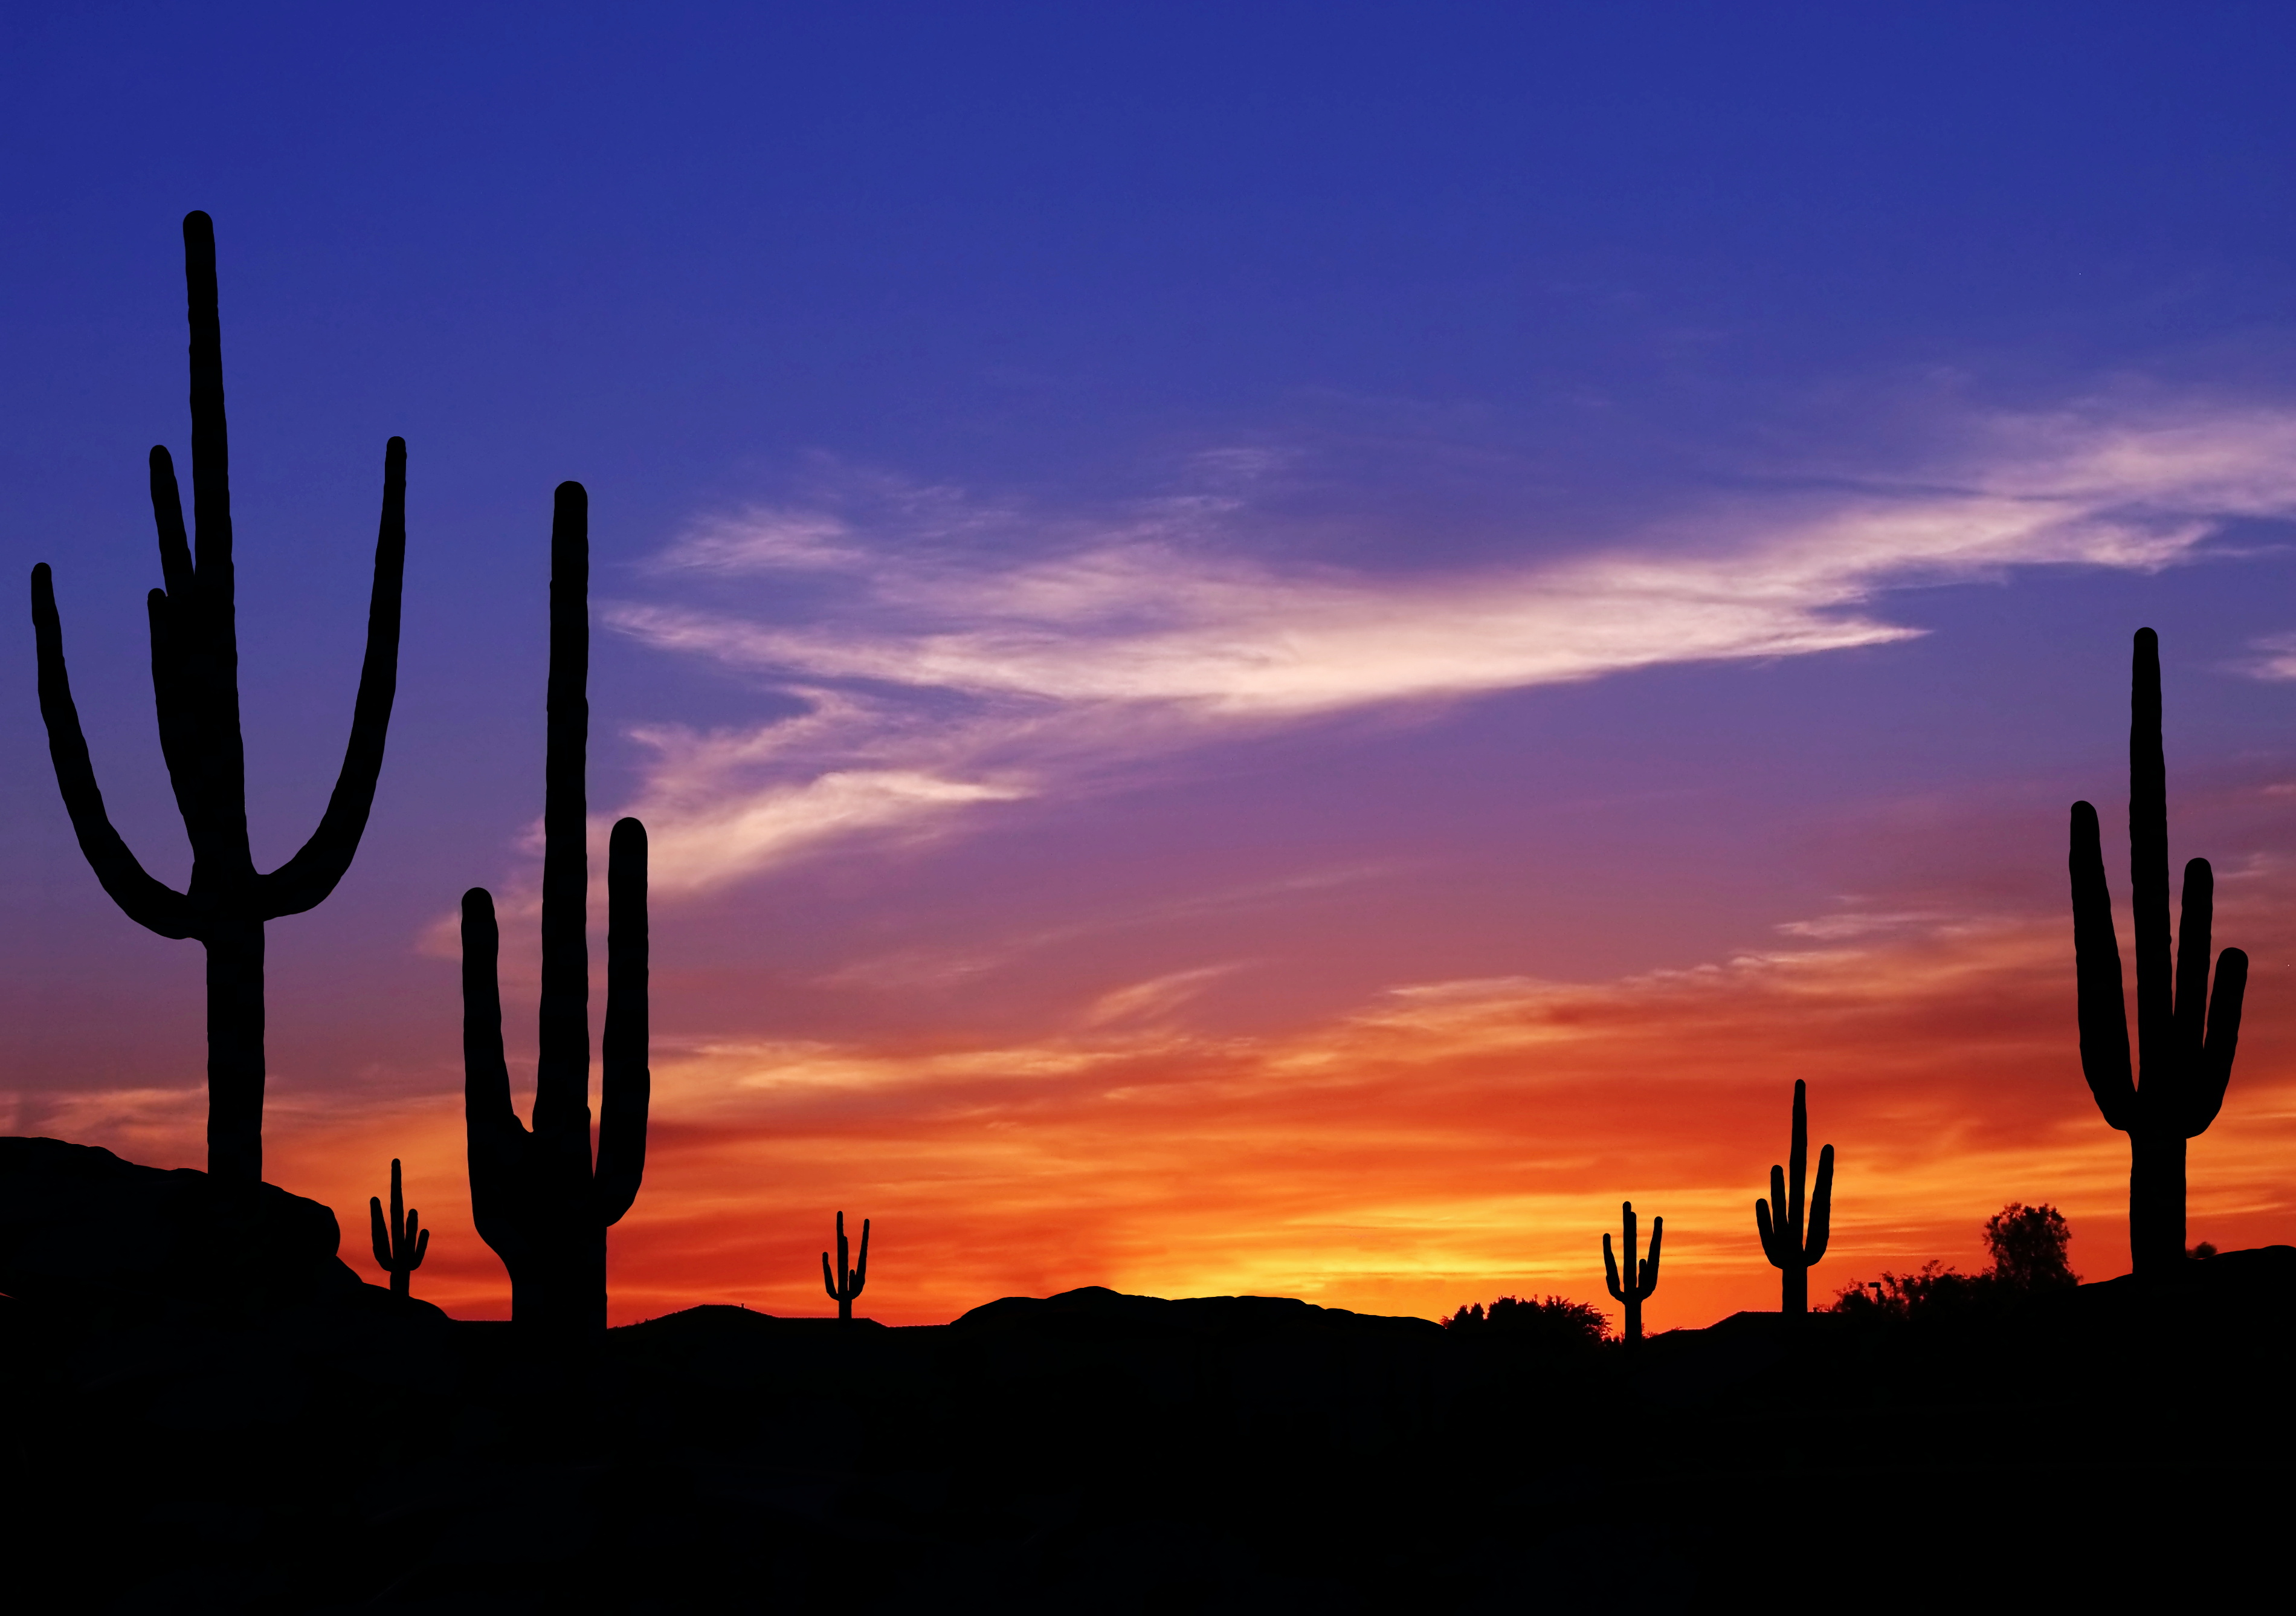 Colorful Sunset in Wild West Desert of Arizona with Cactus ...